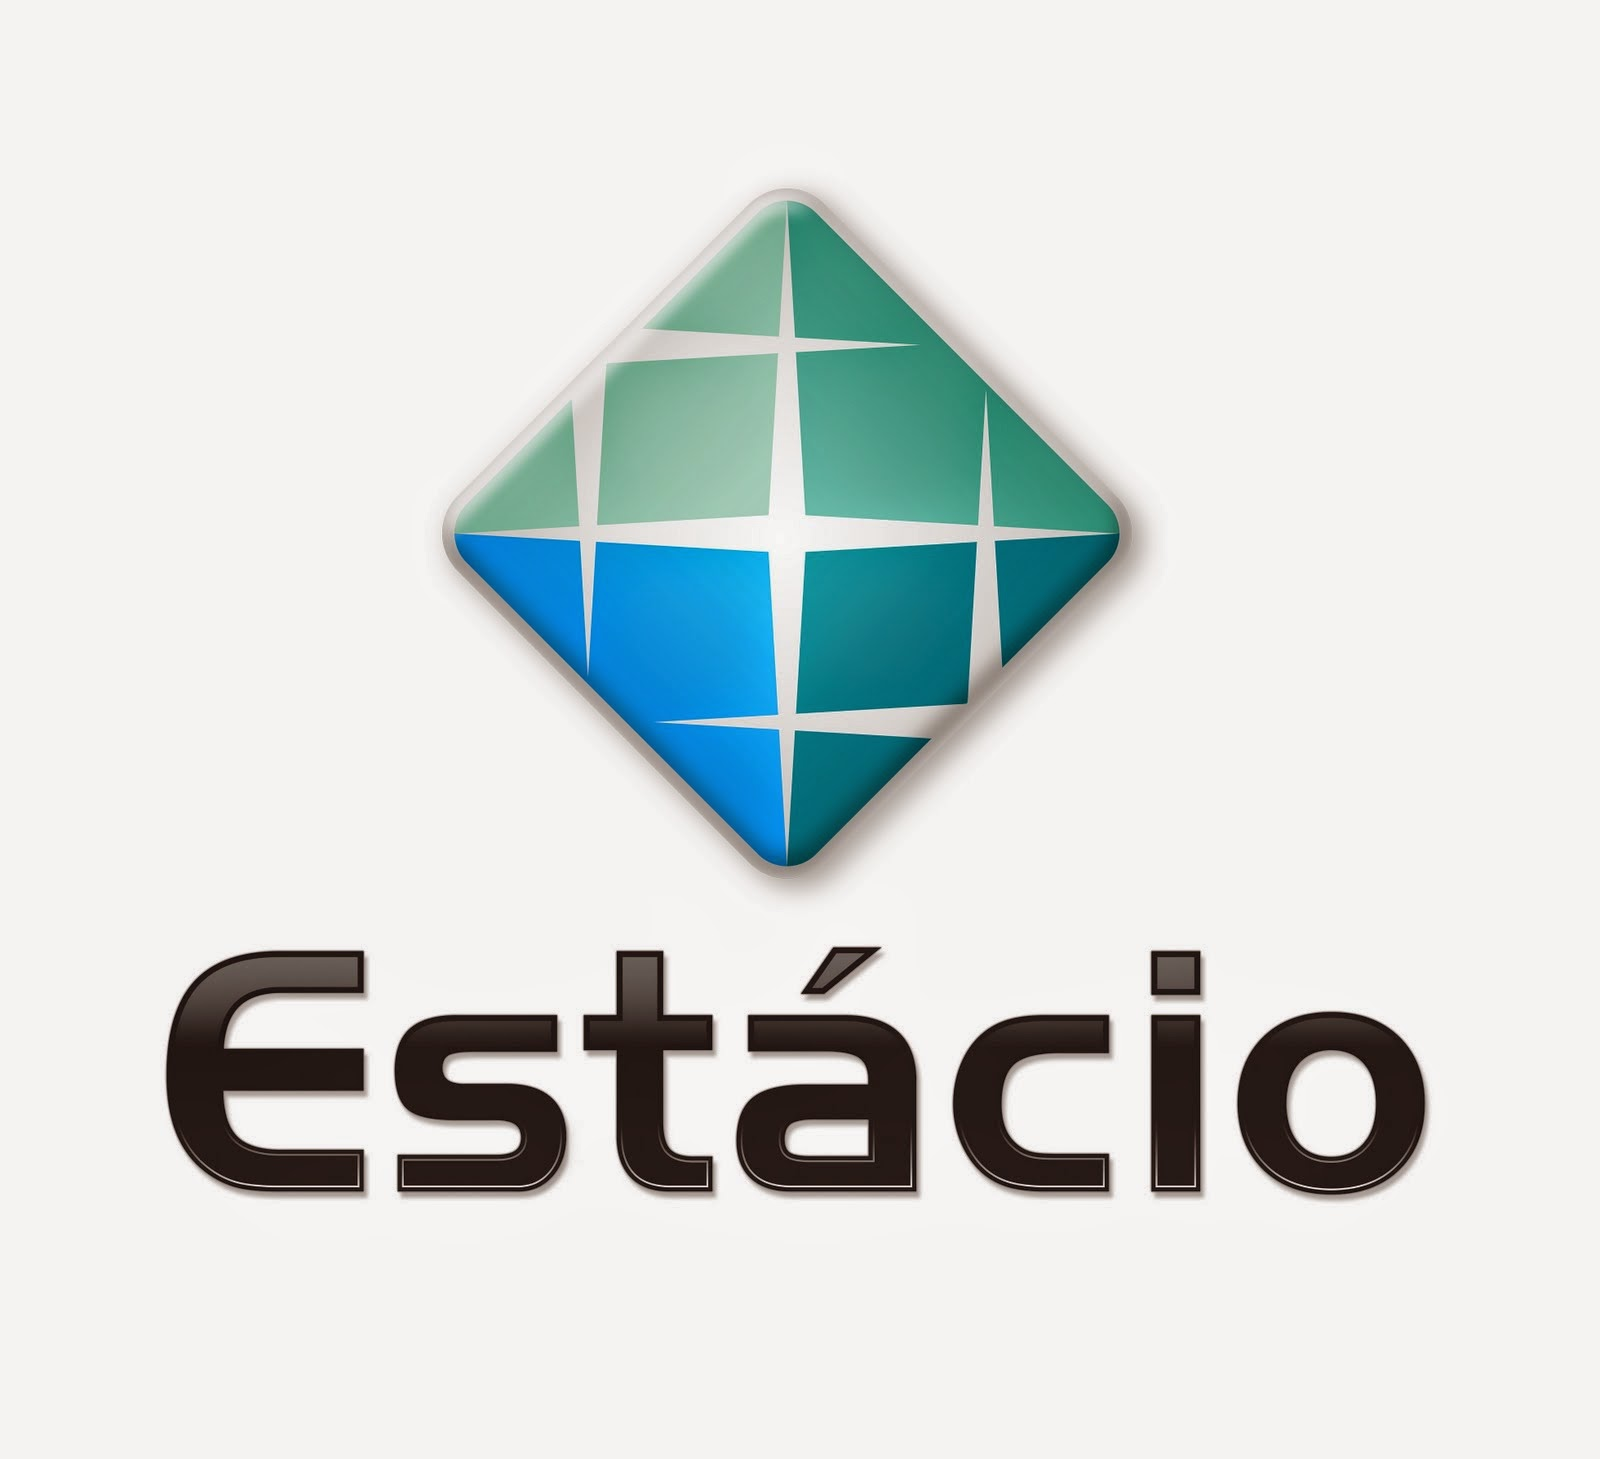 estacio-logo-faculdade-8